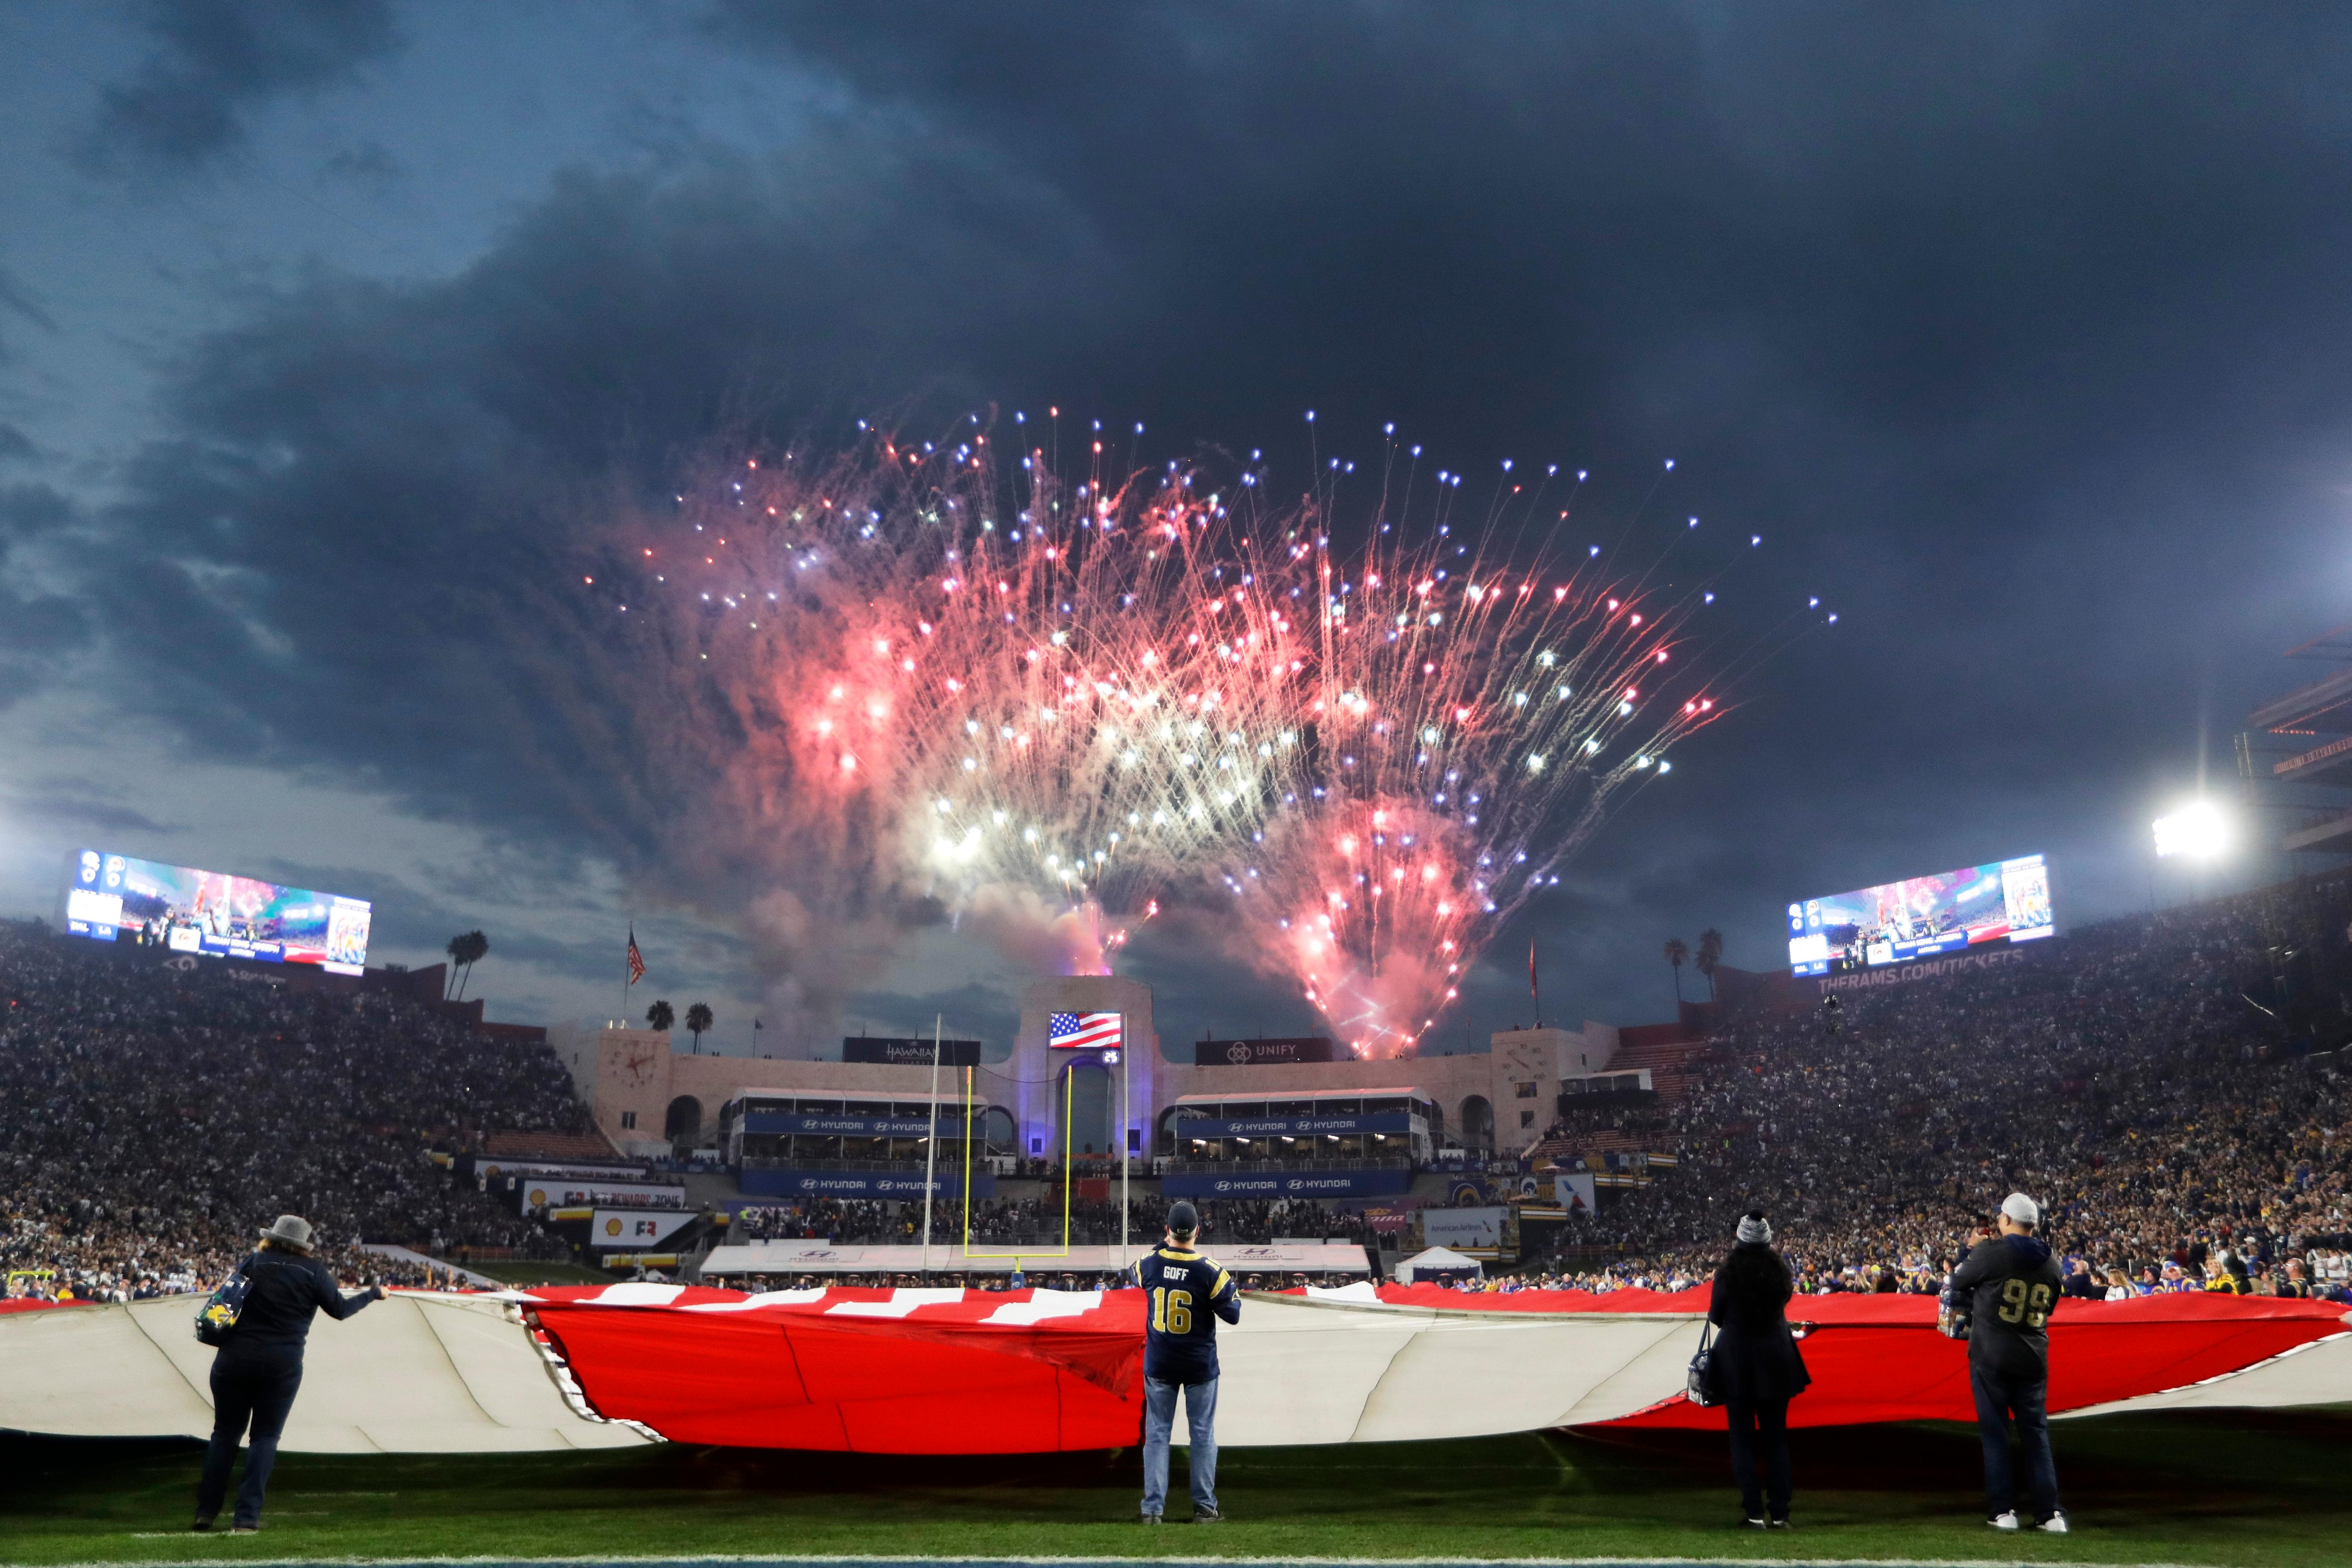 Fireworks explode over the field before an NFL divisional football playoff game between the Los Angeles Rams and the Dallas Cowboys, Saturday, Jan. 12, 2019, in Los Angeles. (AP Photo/Jae C. Hong)